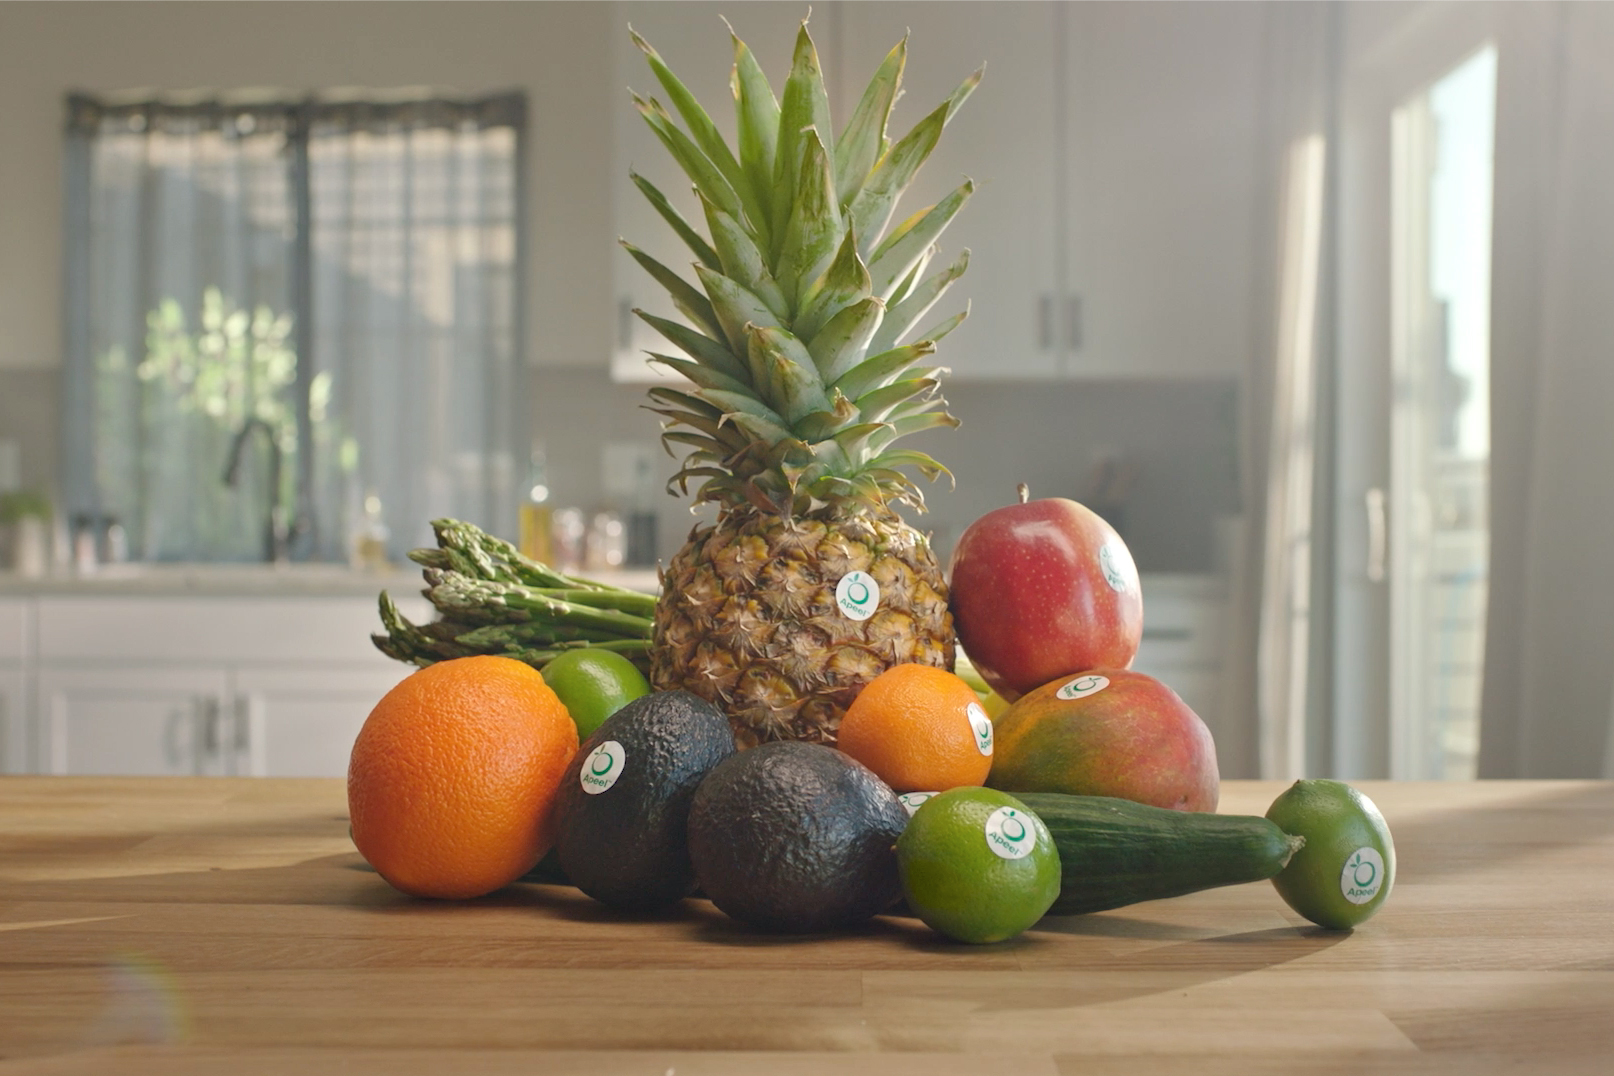 Produce protection brand Apeel markets itself with a 'food gone good' message